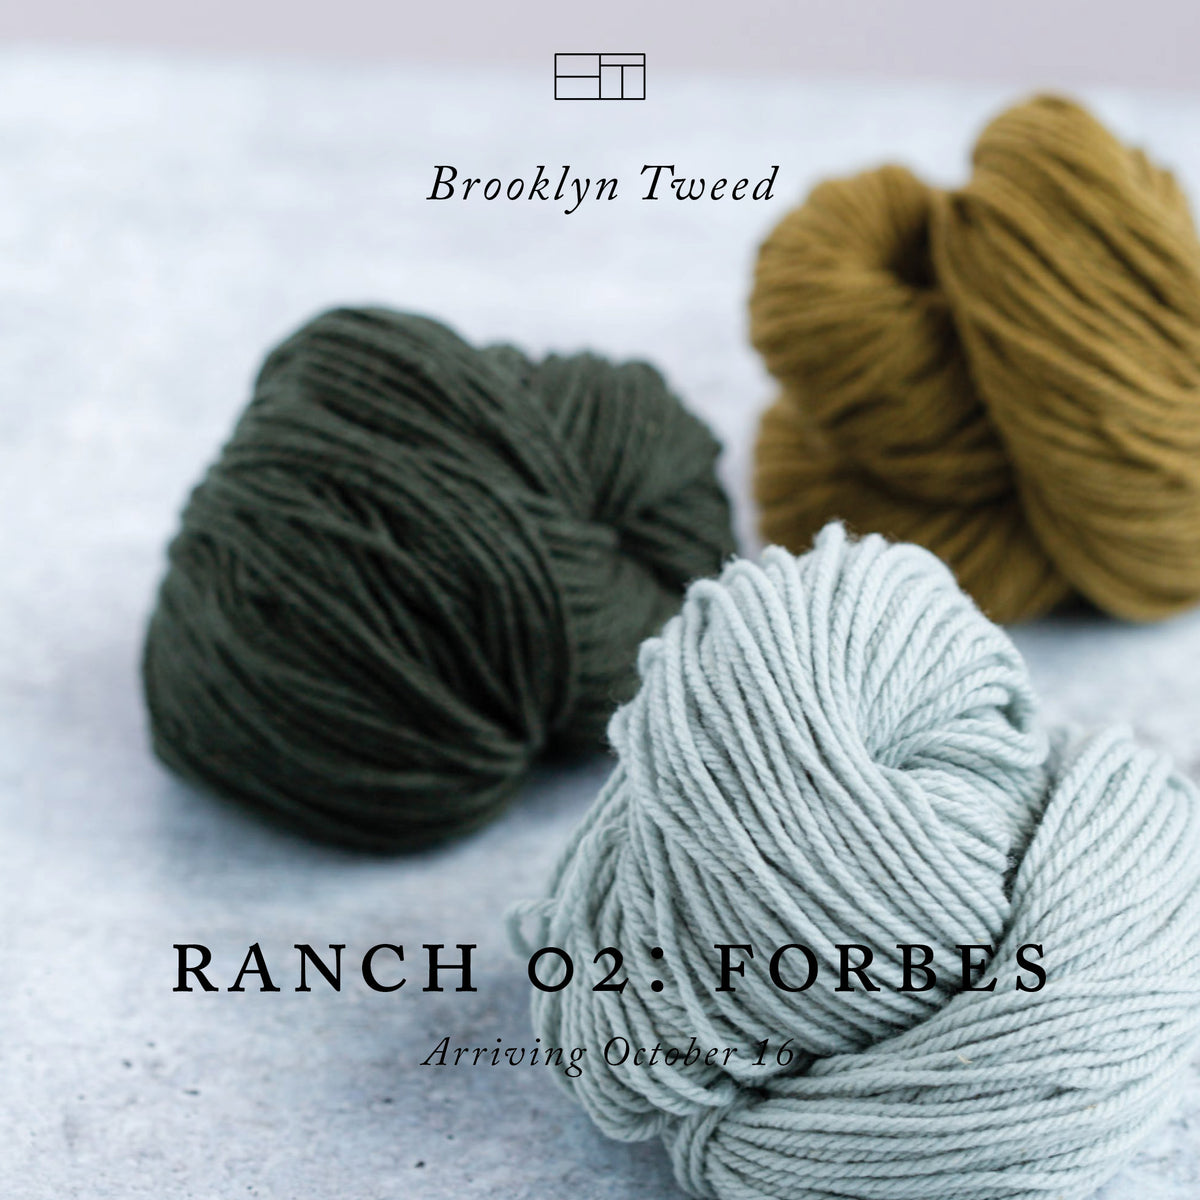 Brooklyn Tweed Forbes Ranch 02